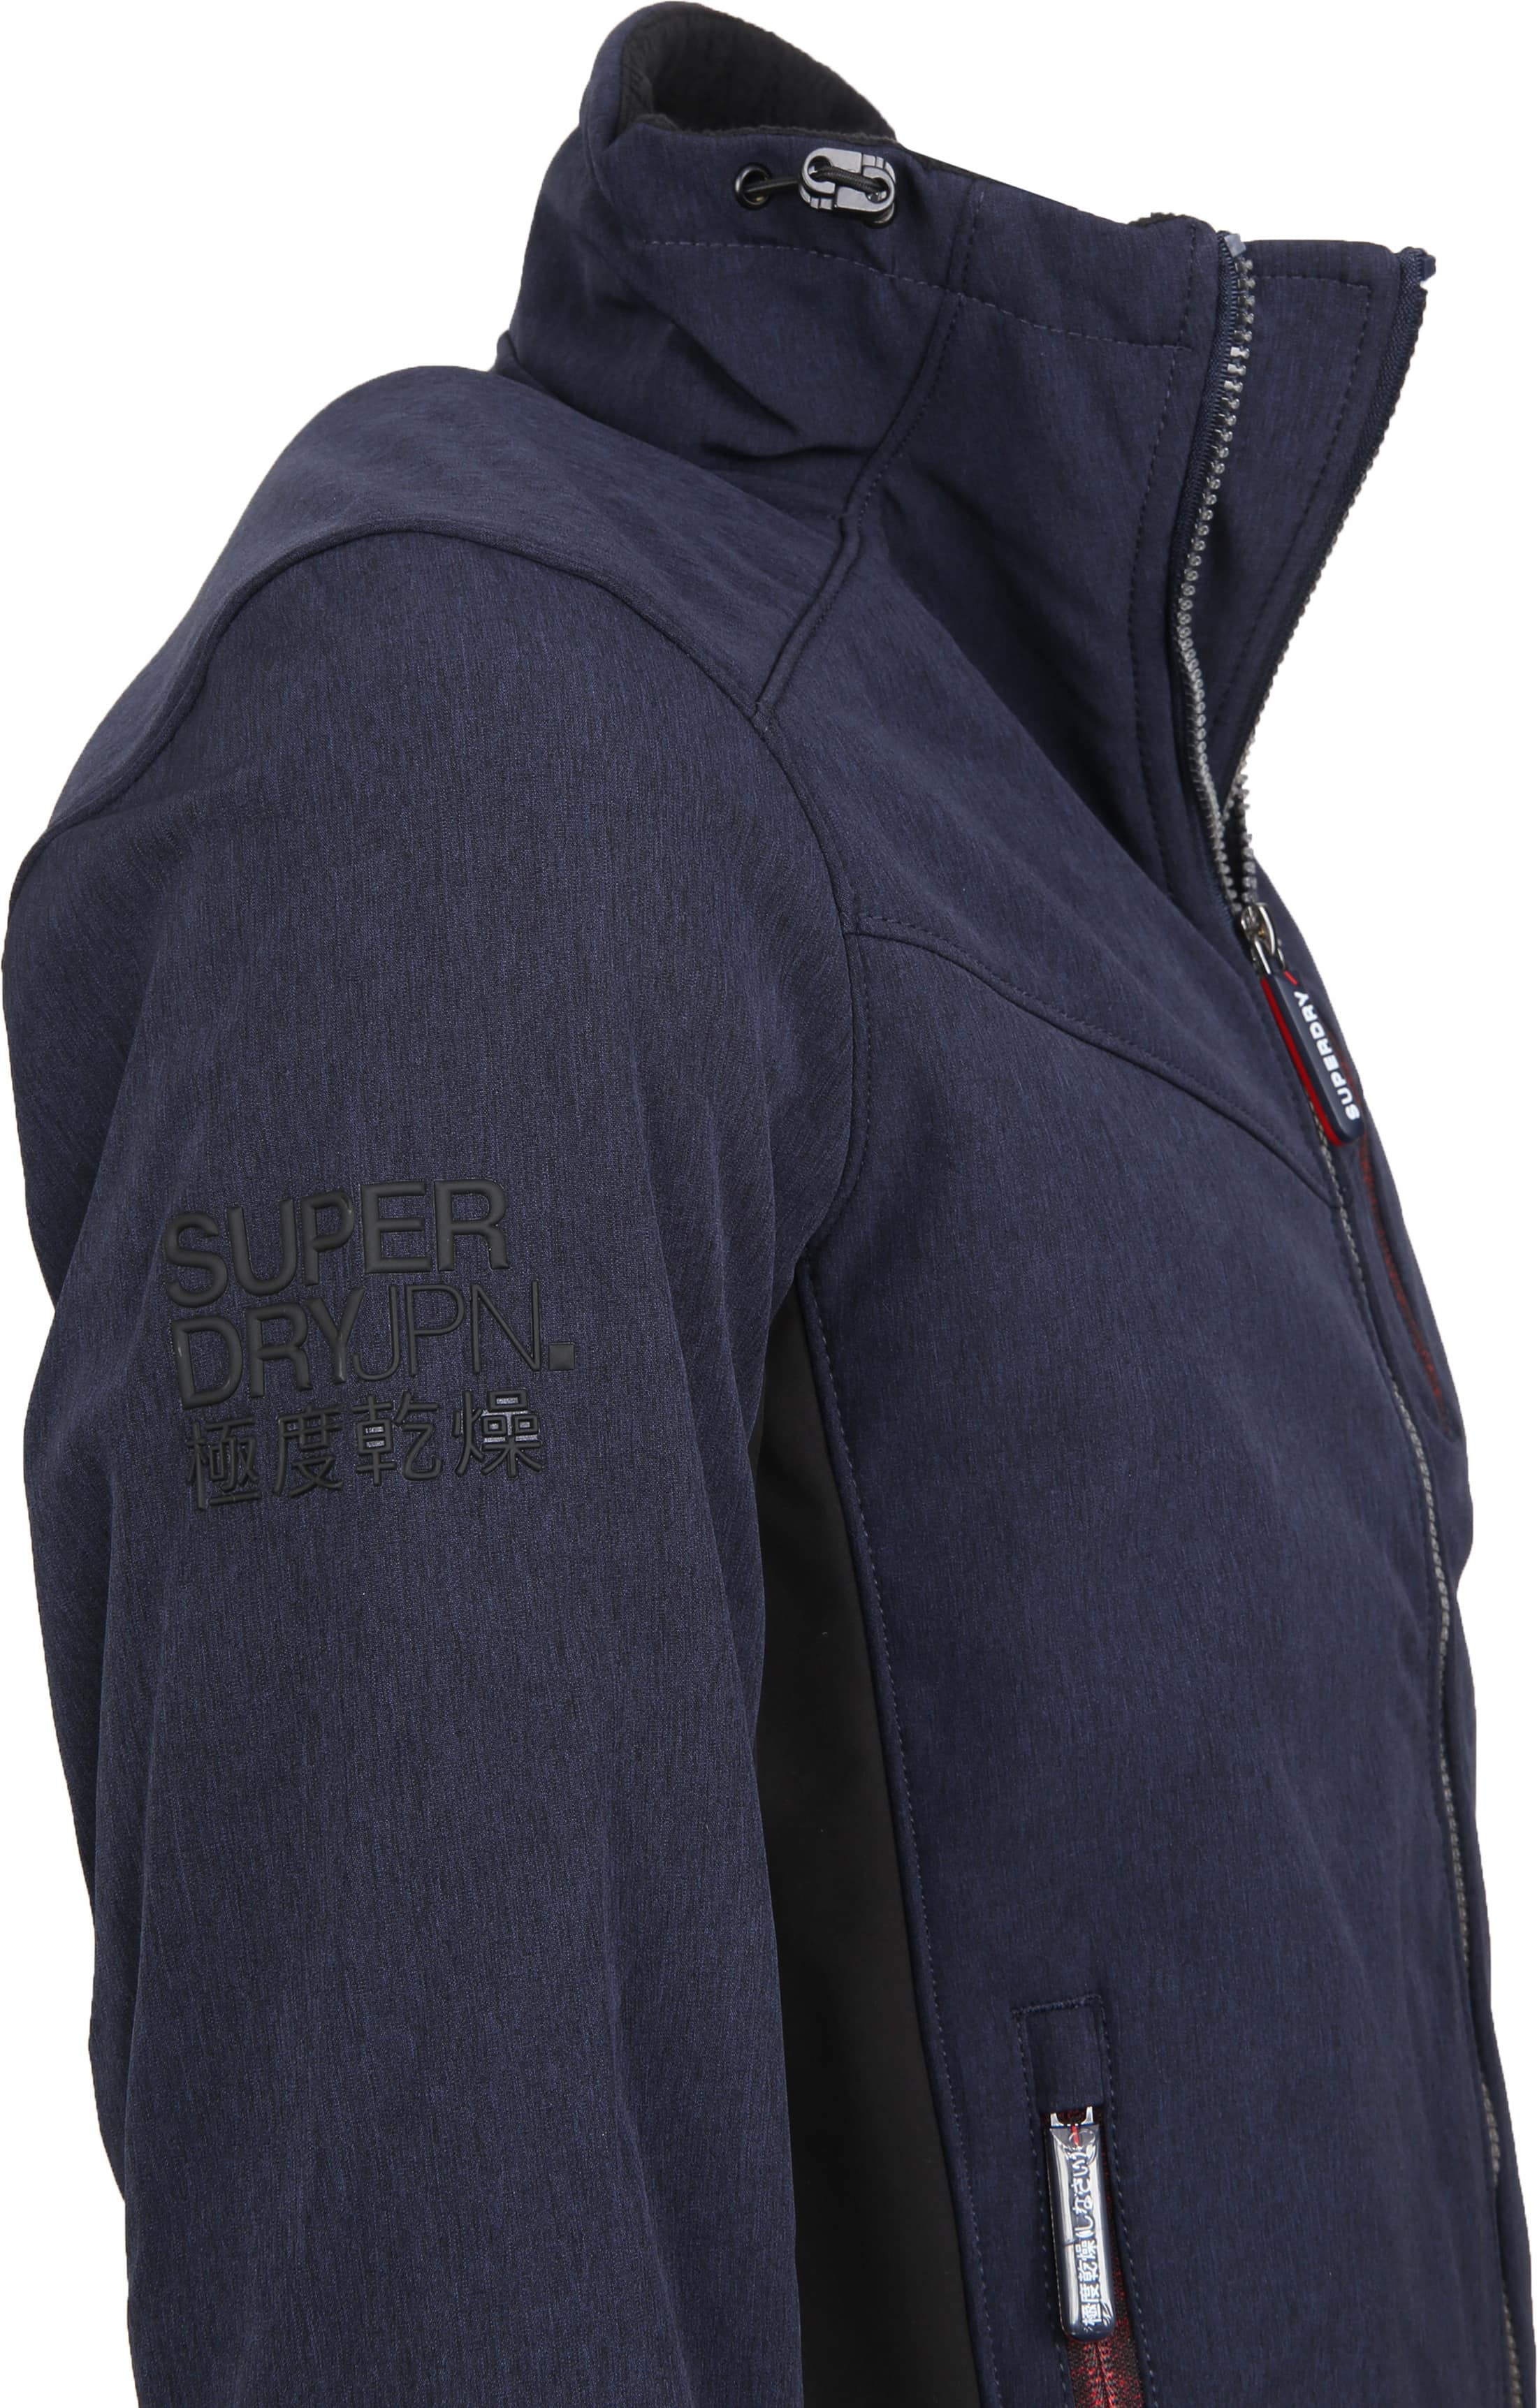 Superdry Paralex Windjack Navy foto 3